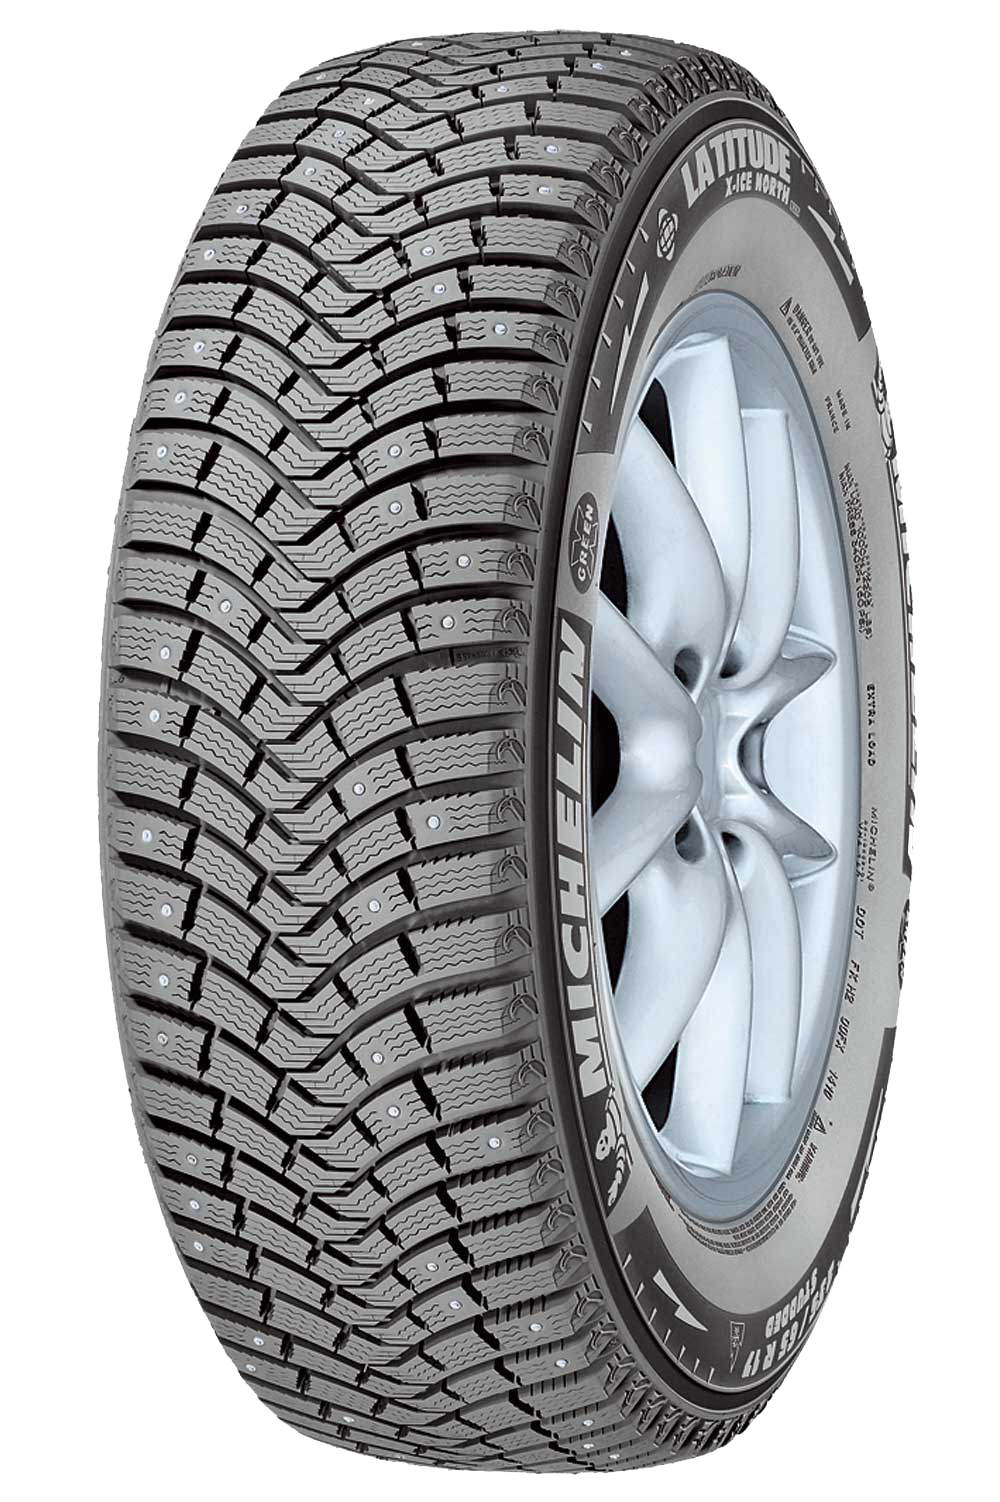 Зимняя шипованная шина Michelin Latitude X-Ice North XIN2 plus 295/40 R20 110T